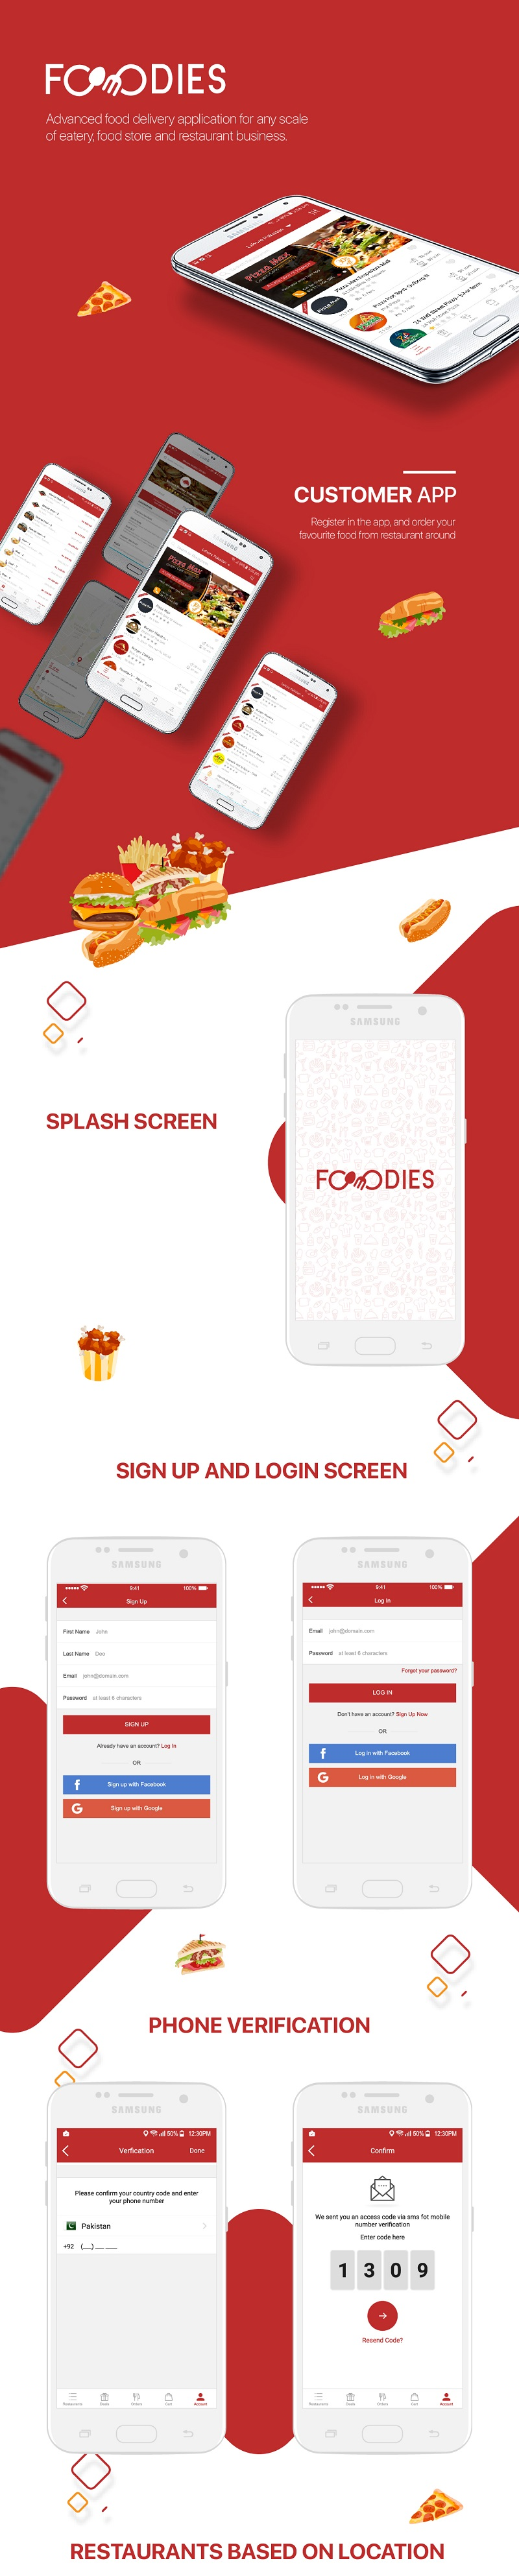 Native Restaurant Food Delivery & Ordering System With Delivery Boy - Android v2.0.6 - 10